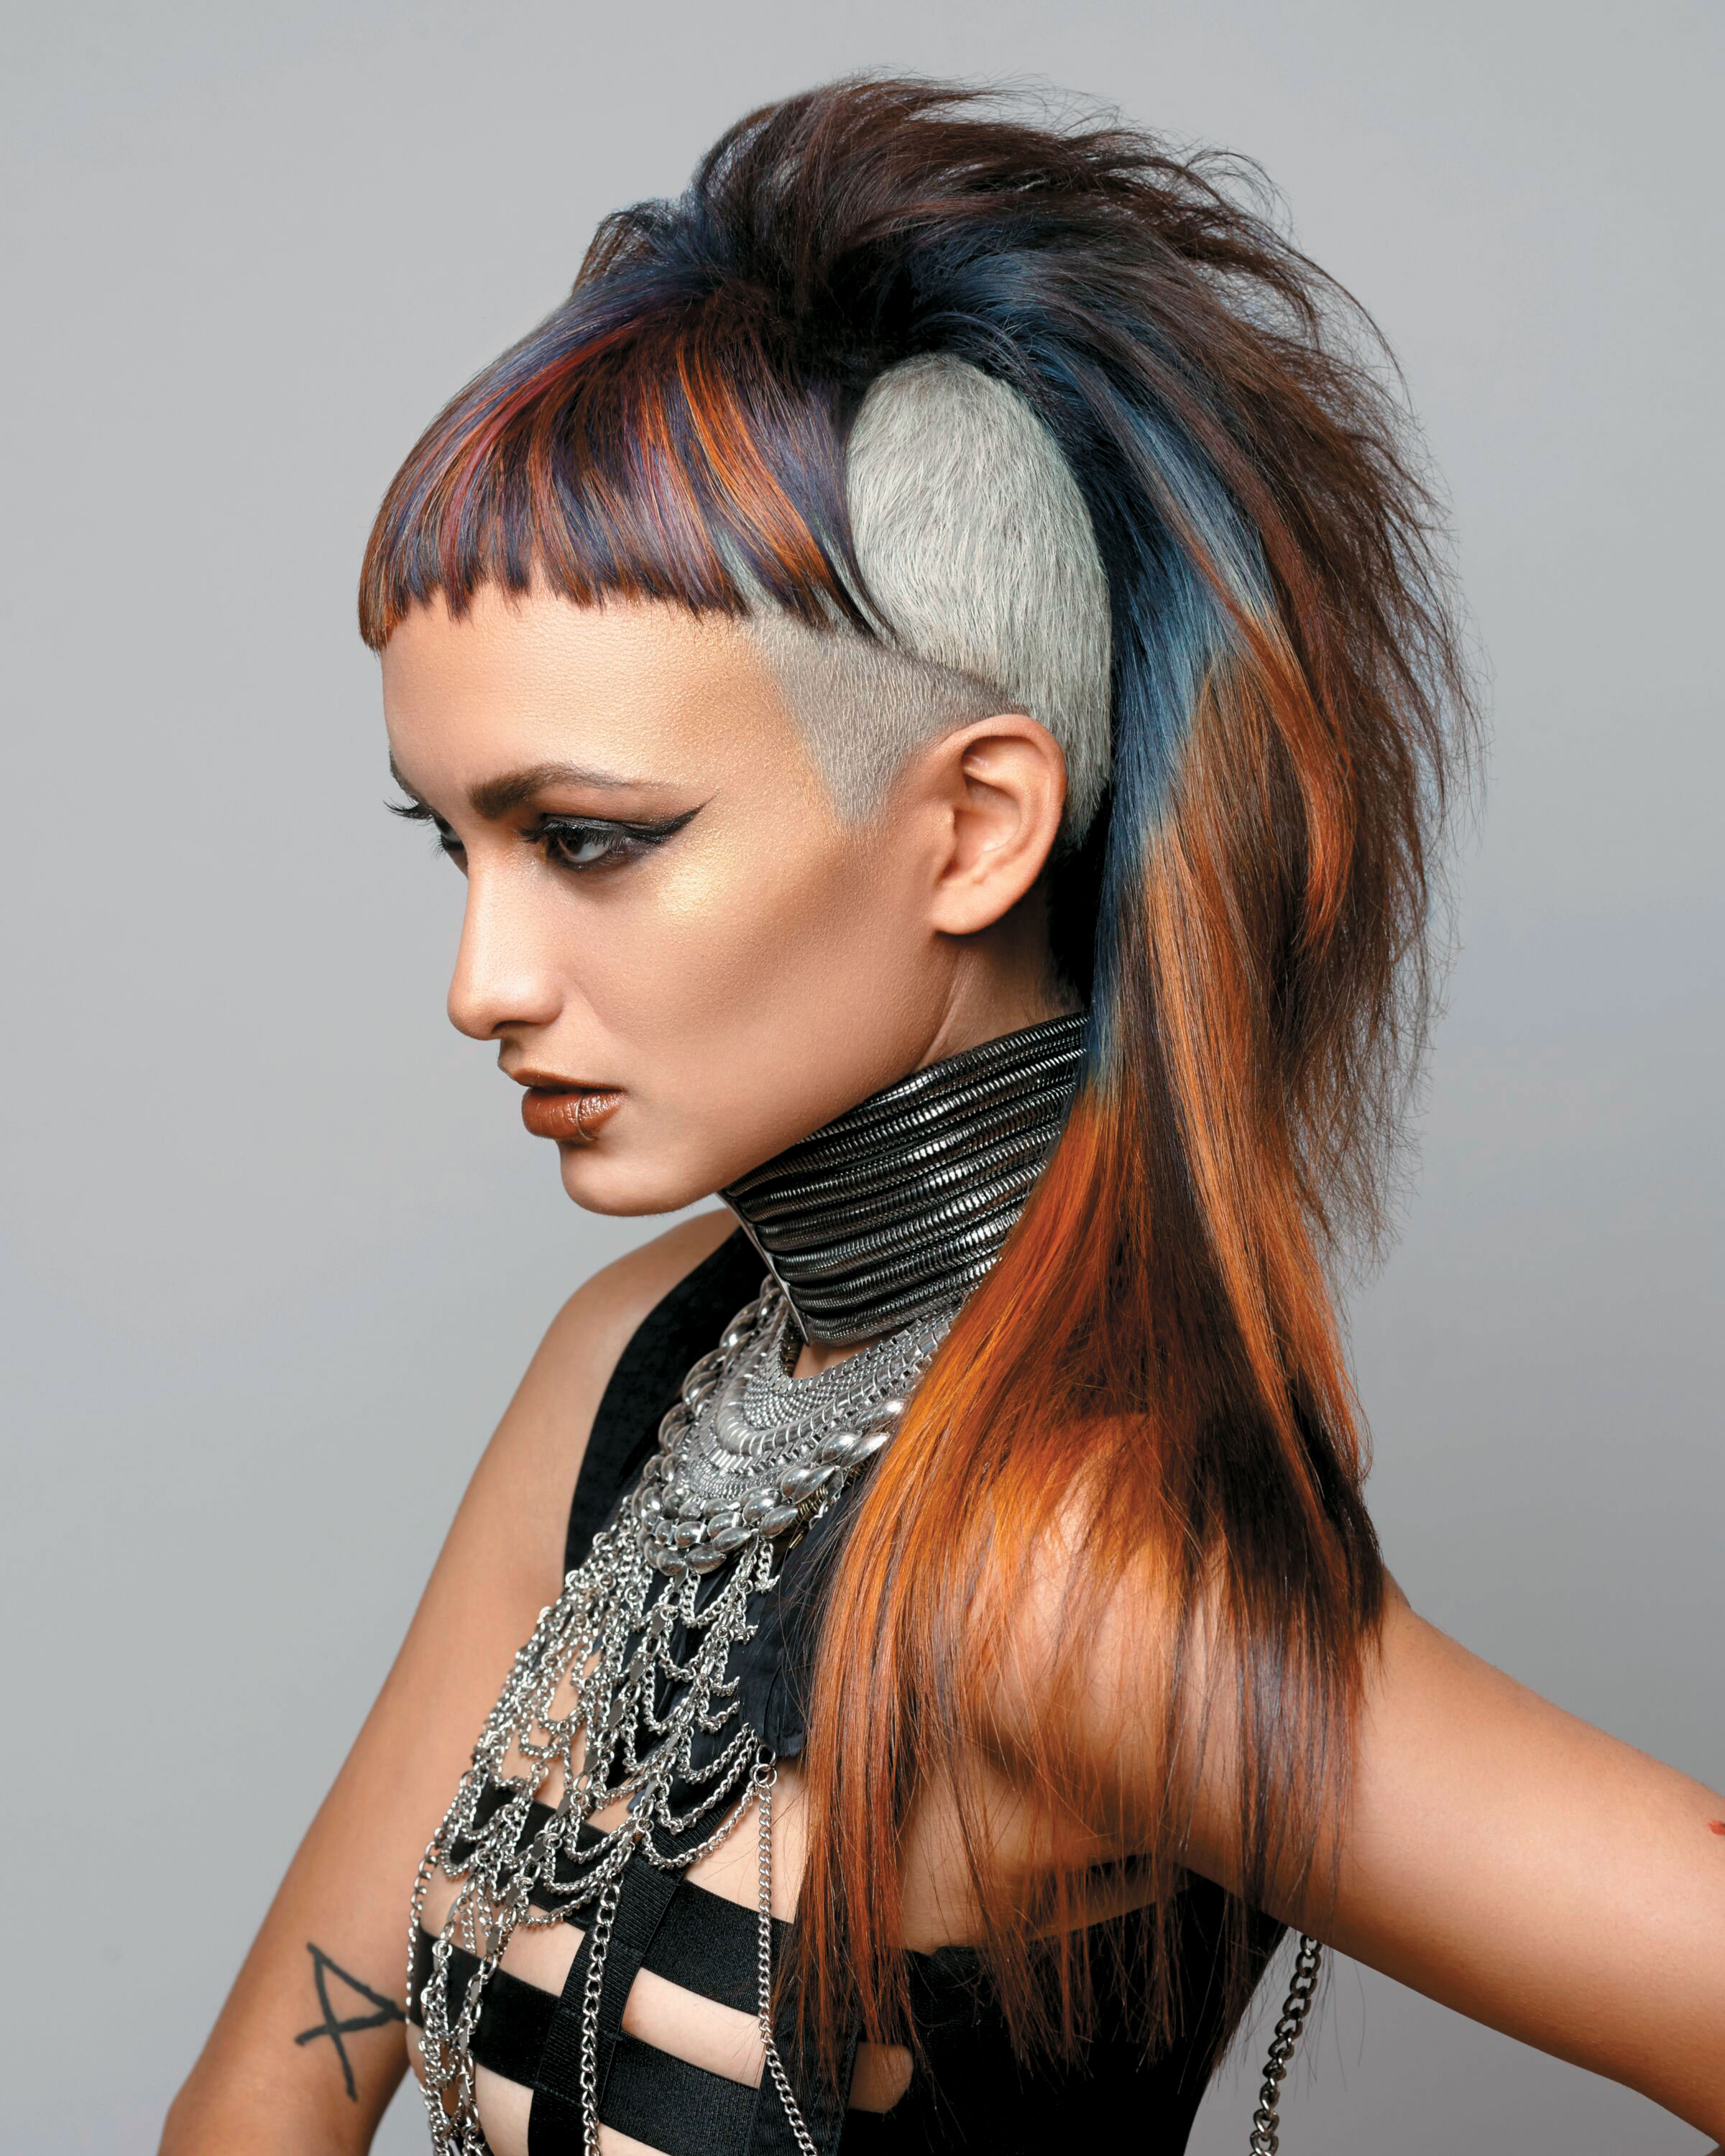 Harley Lobasso of Hair by Scott & Company